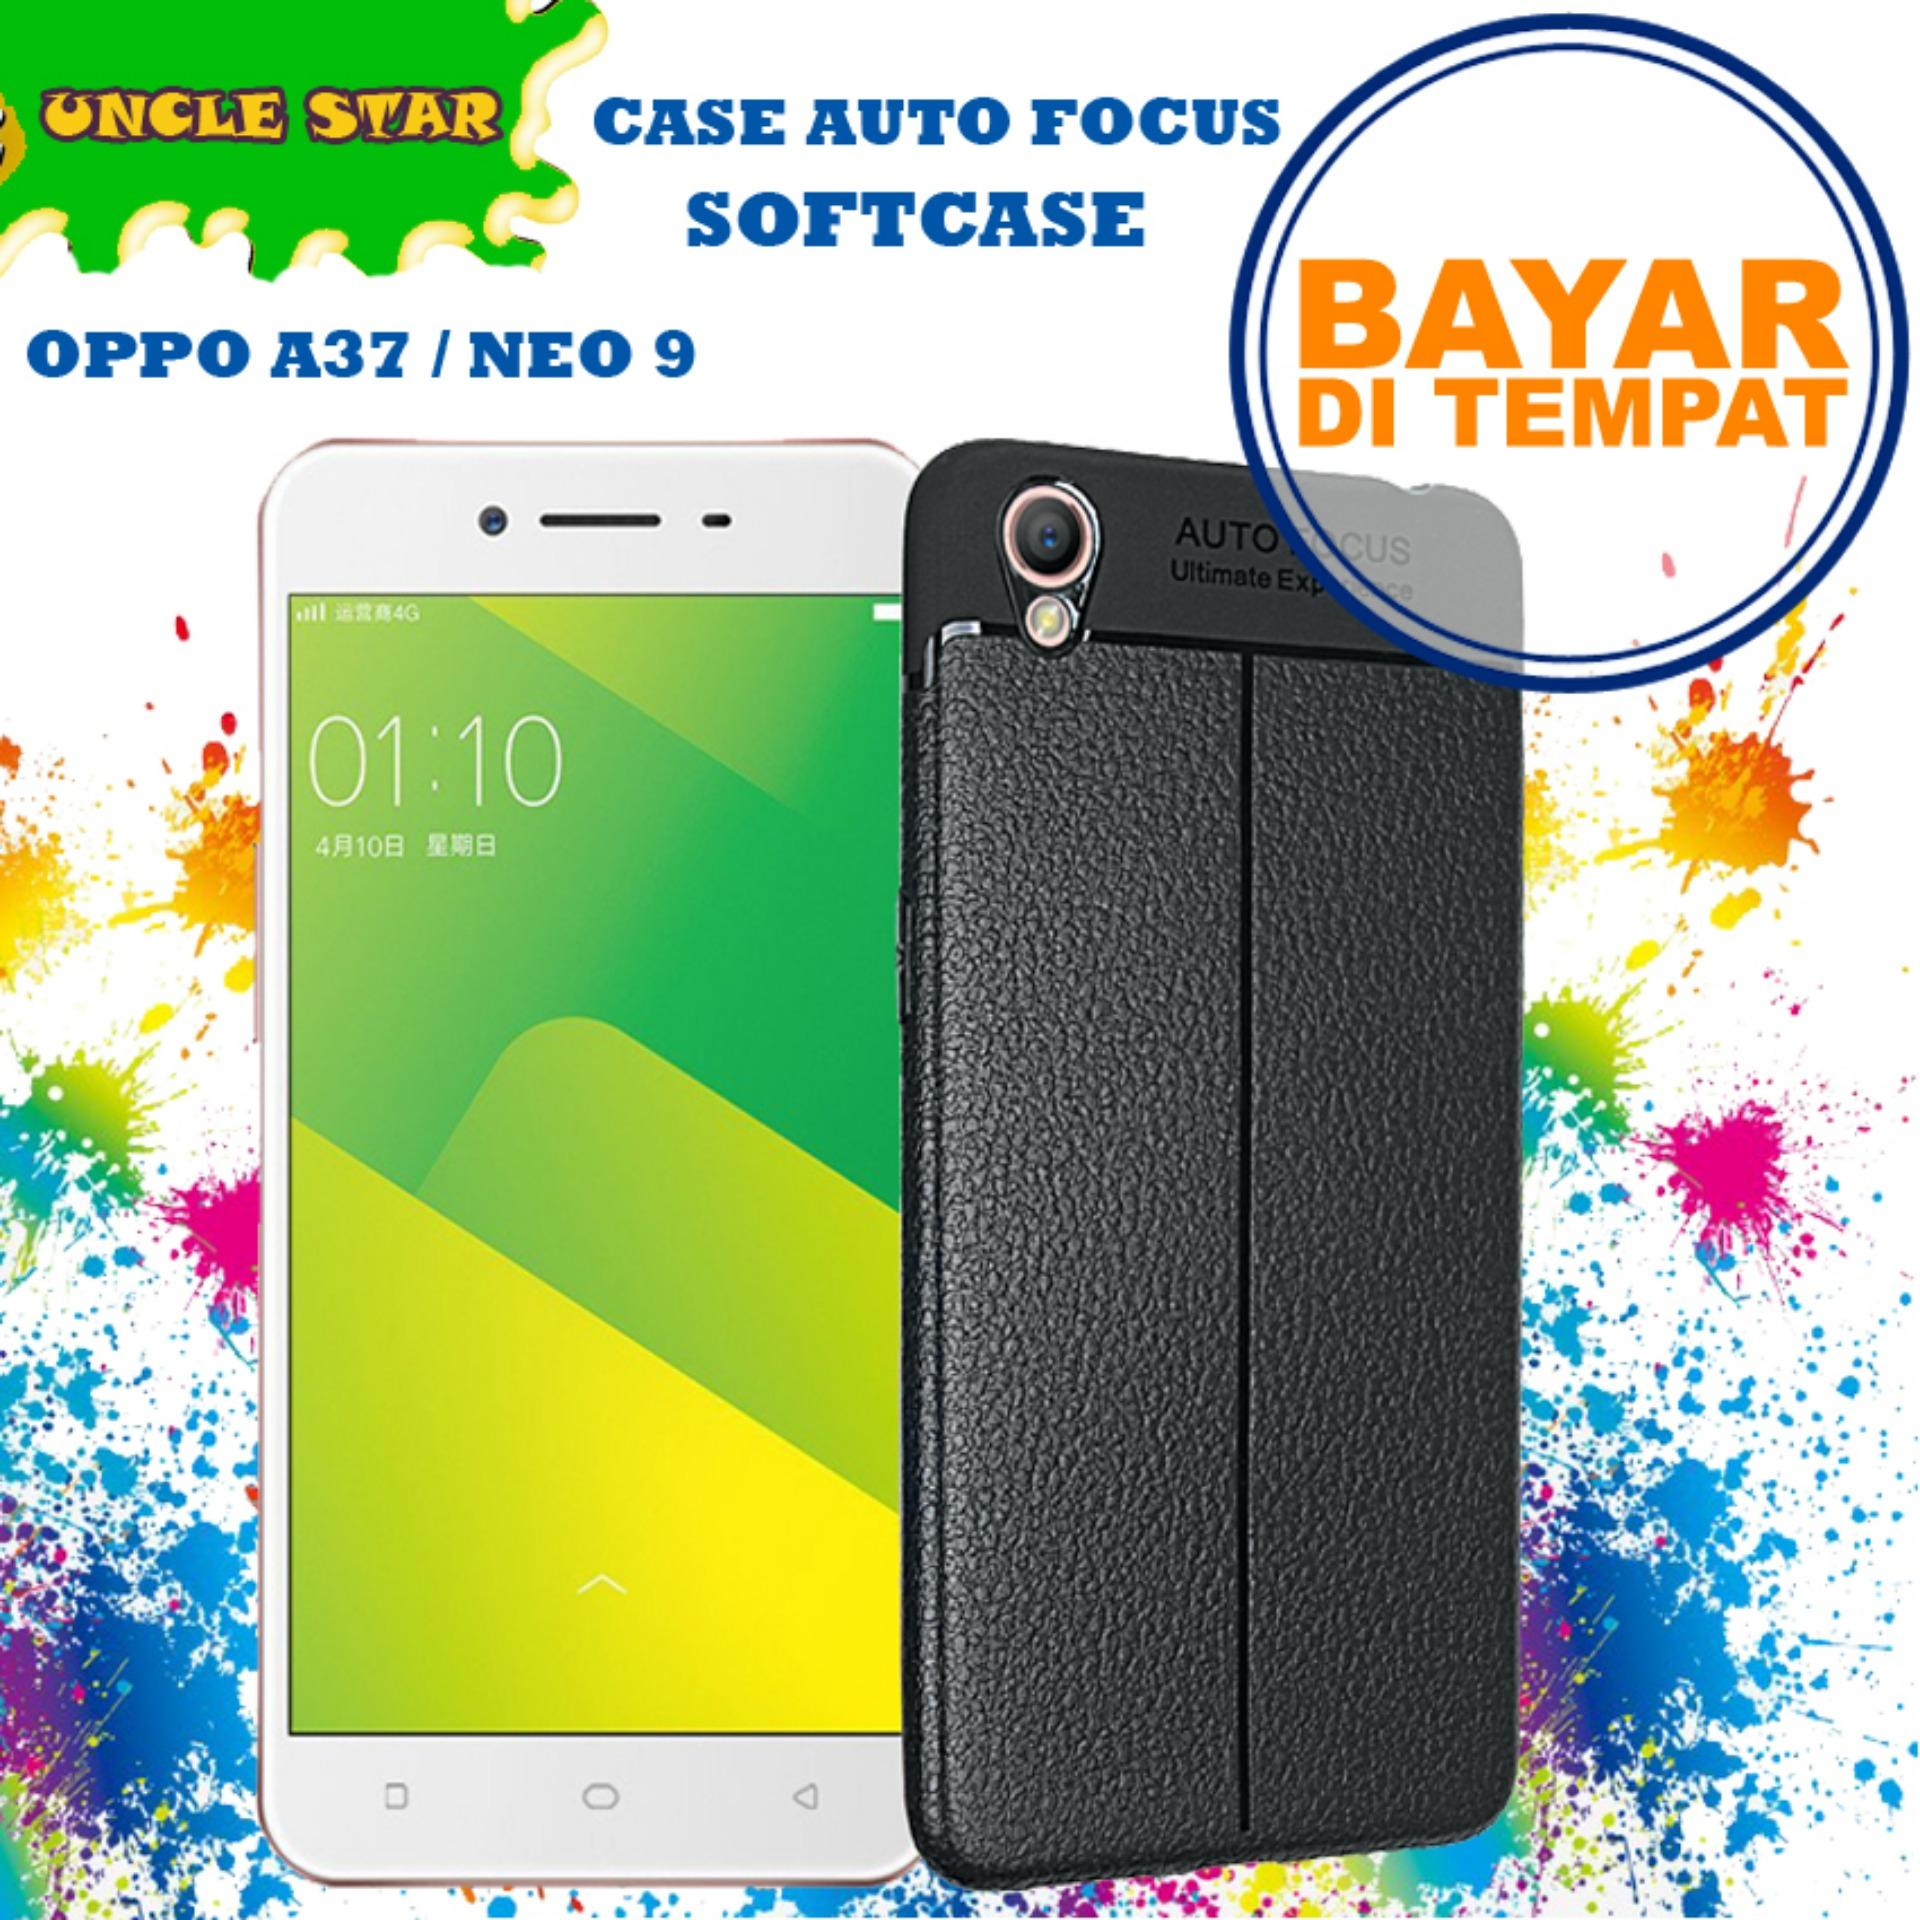 Case Ultrathin Shining List Chrome For Oppo Neo 9 A37 Hitam Page 2 Source · Uncle Star Case Ipaky Auto Focus Elegant Case for Oppo A37 Neo 9